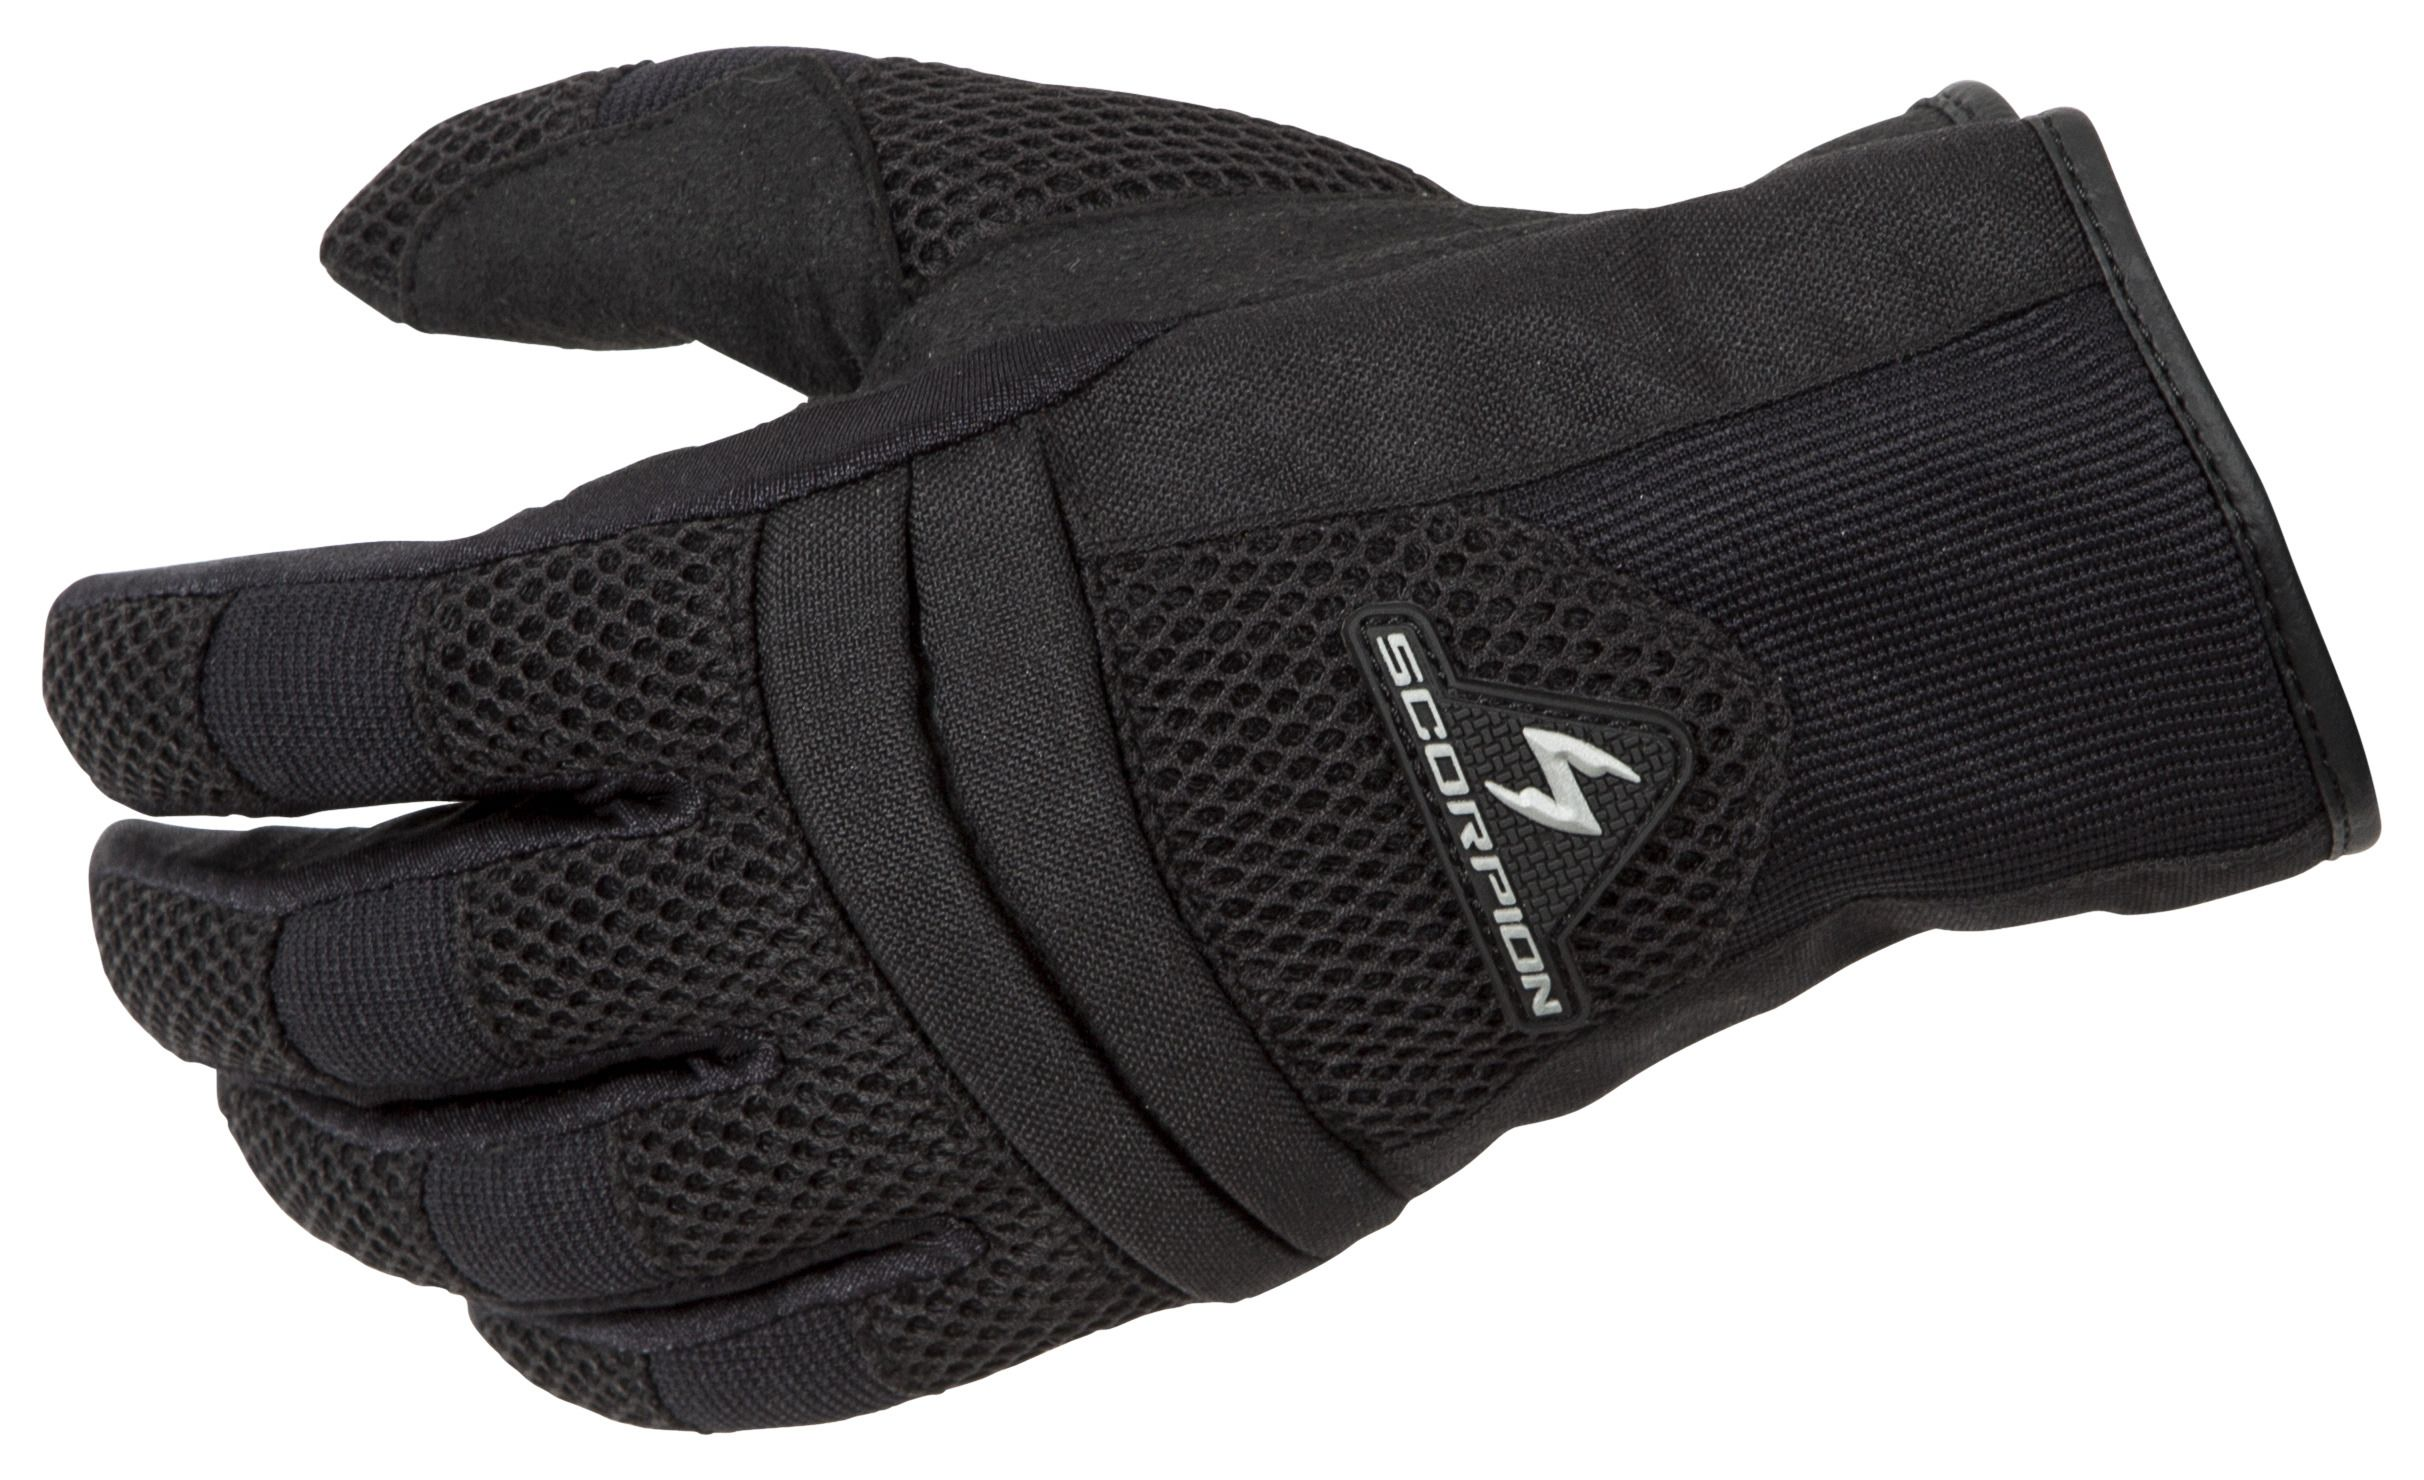 Motorcycle gloves mesh - Motorcycle Gloves Mesh 27